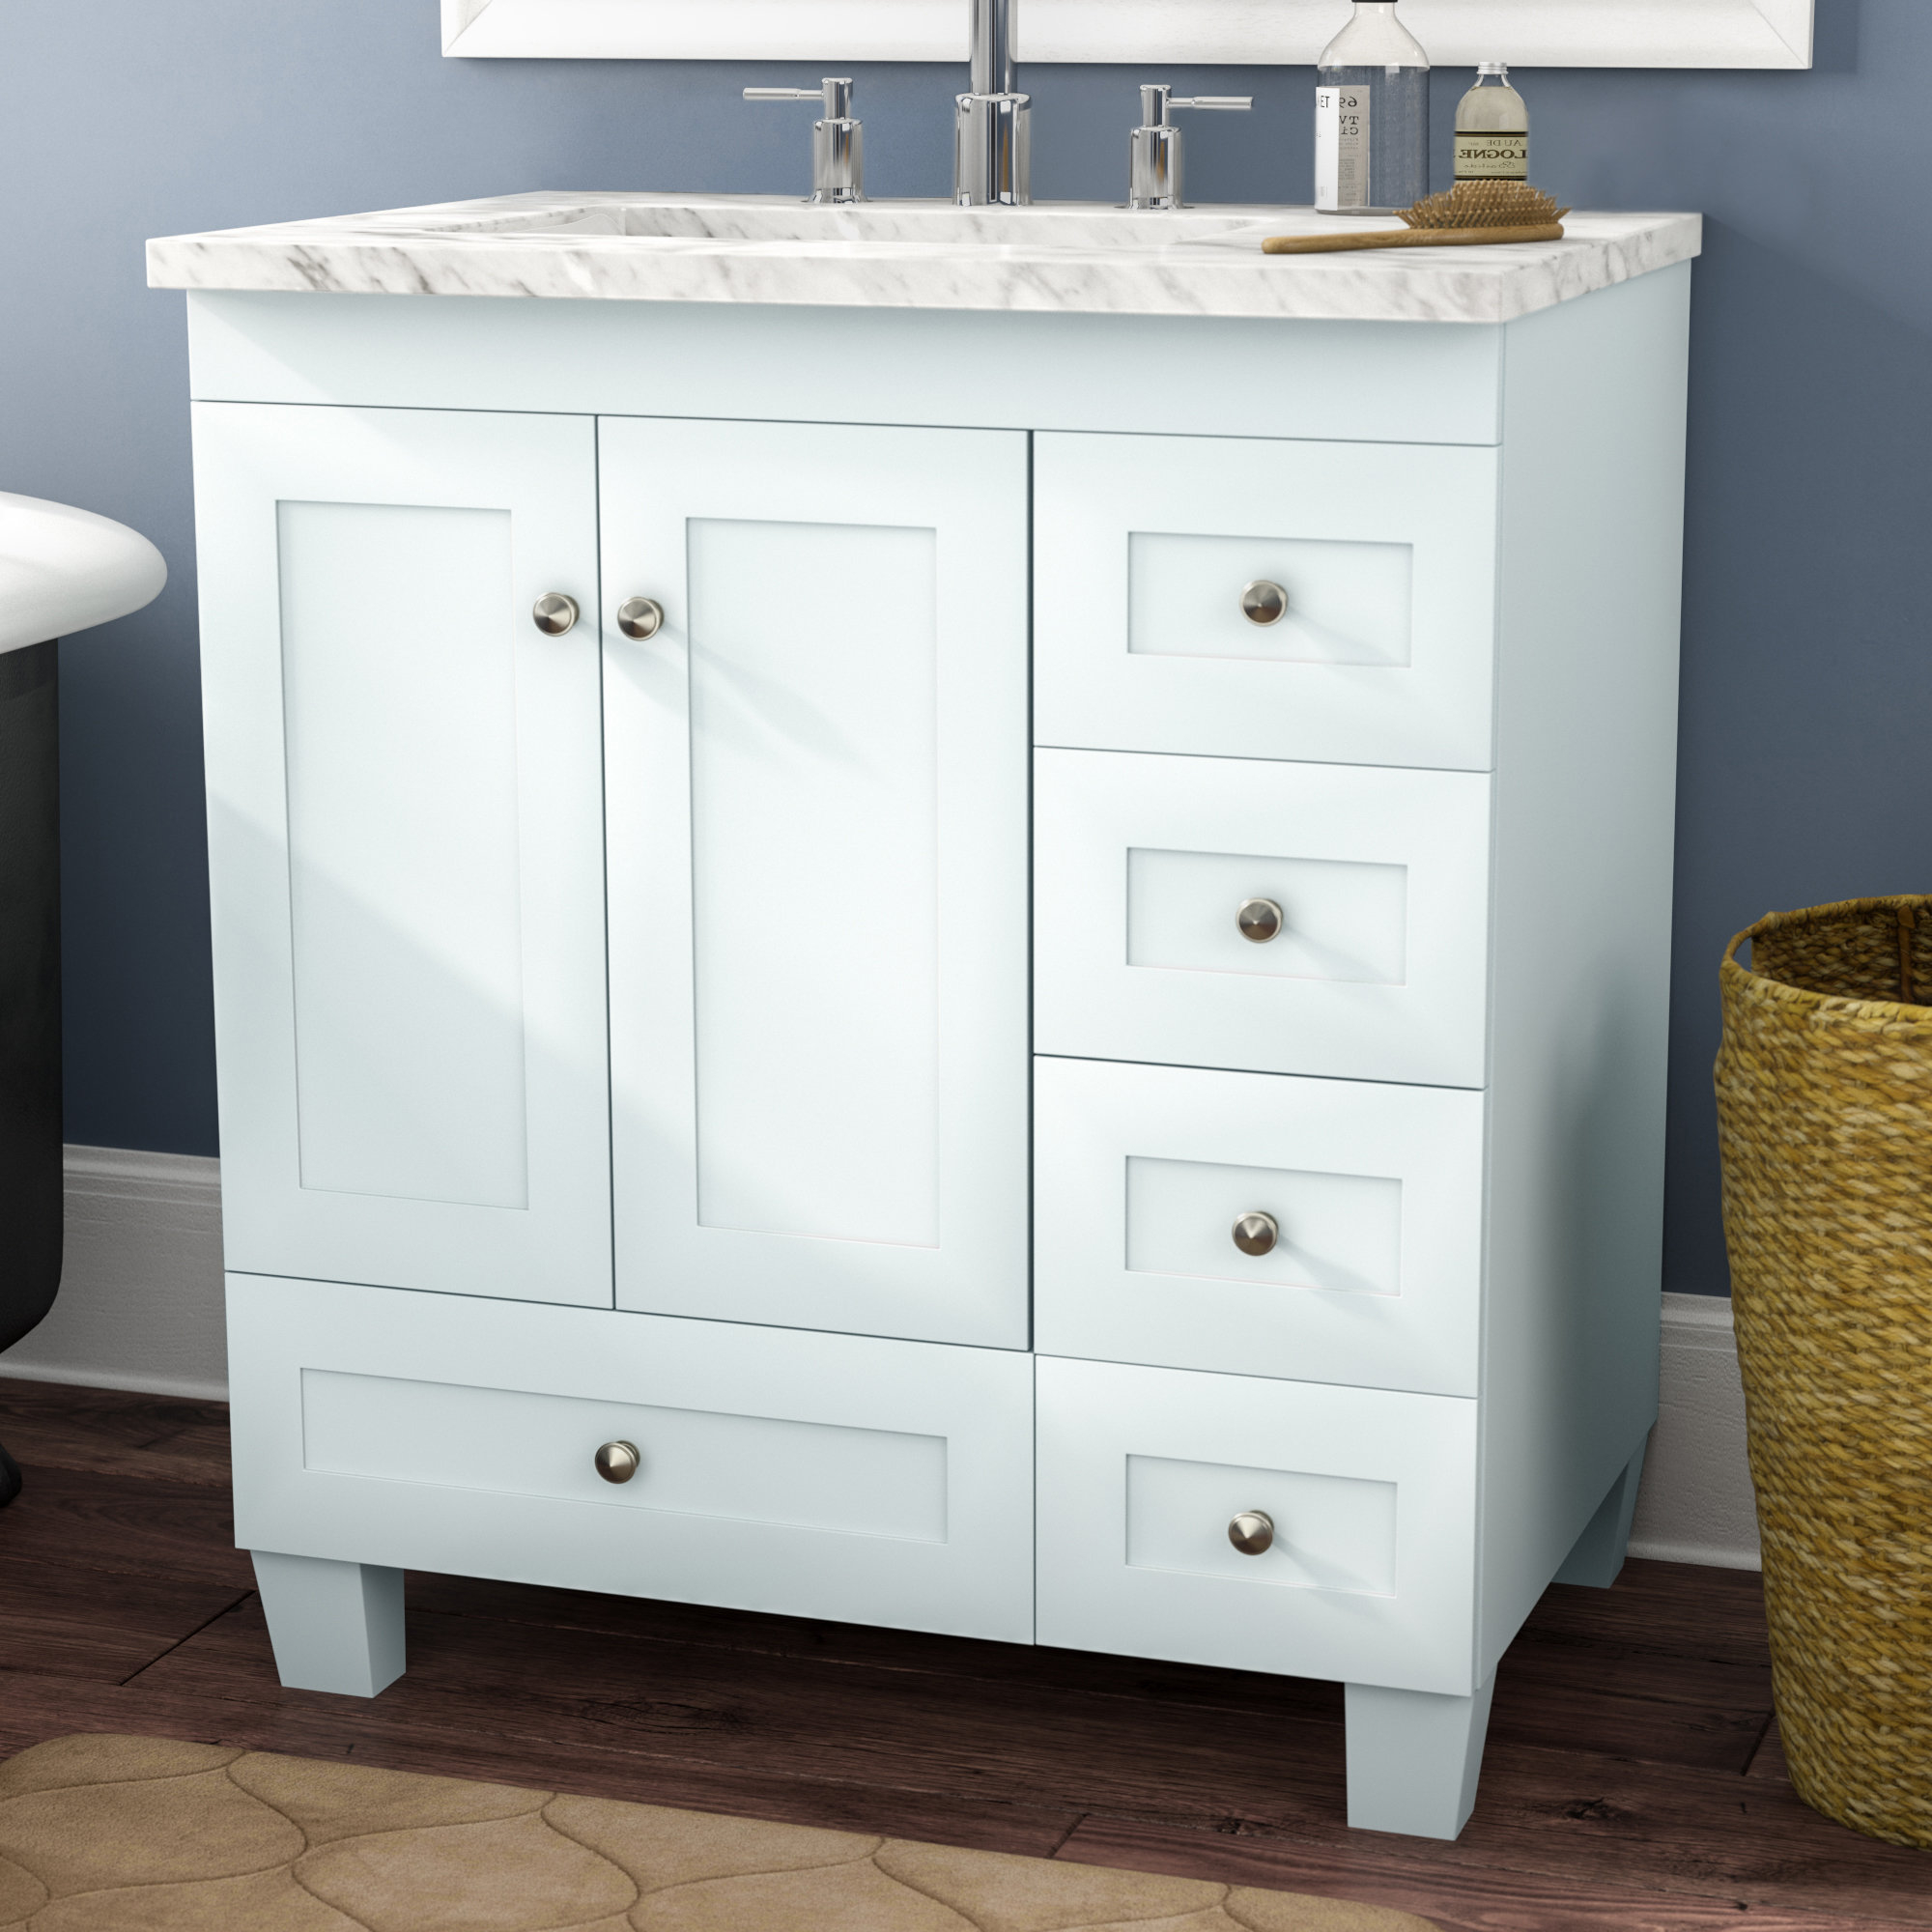 Three Posts Lauder 31 Single Bathroom Vanity Reviews Wayfair intended for size 2000 X 2000